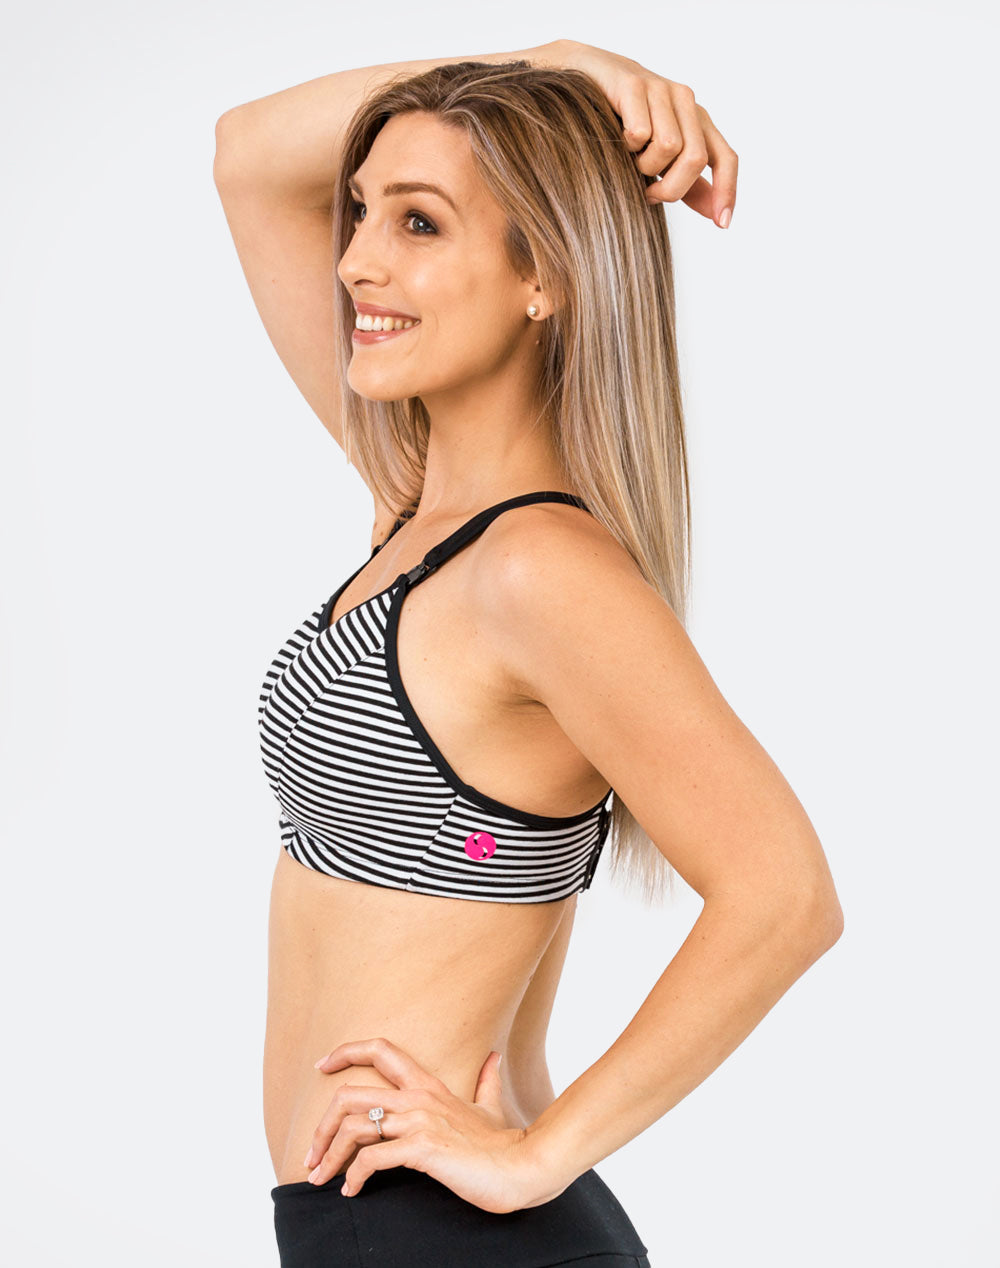 mom in a striped ultimate bra nursing sports bra side view showing Cadenshae logo